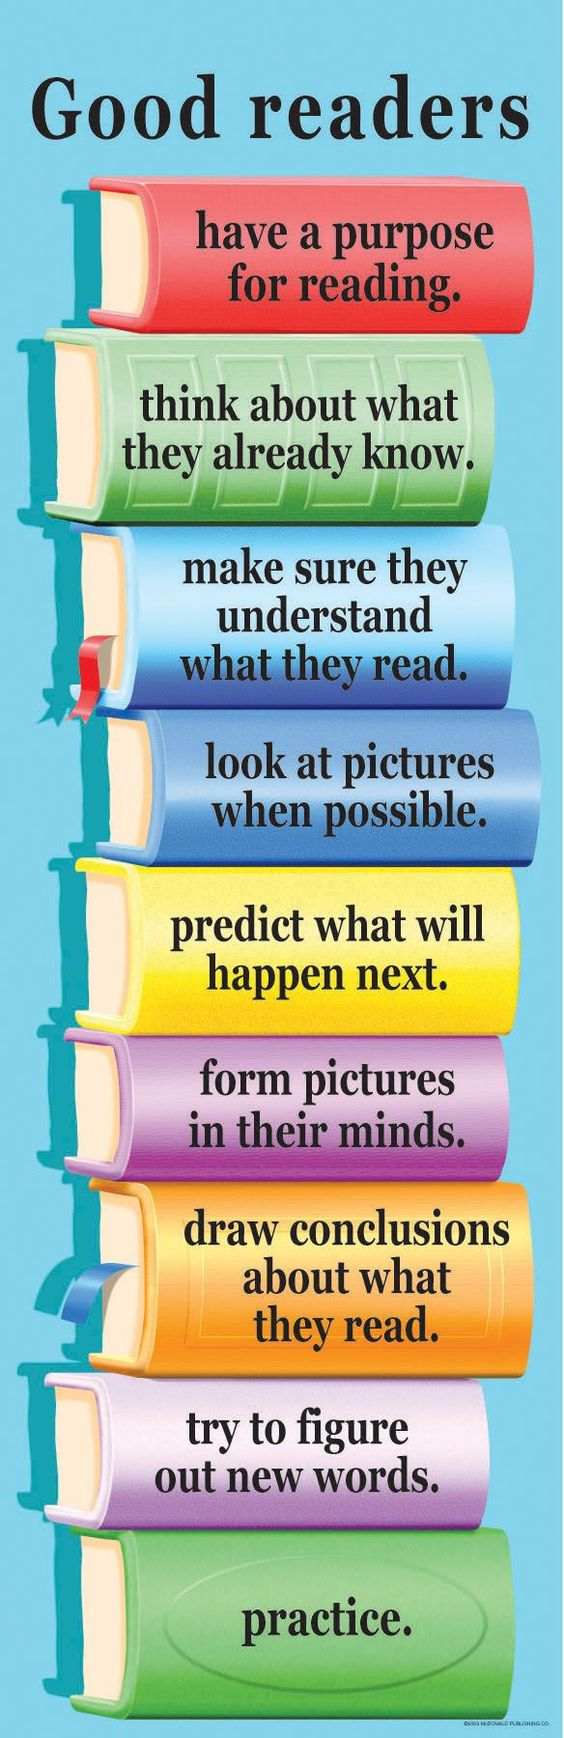 Middle School Reading Classroom Decorations ~ What good readers do colossal poster reading tips